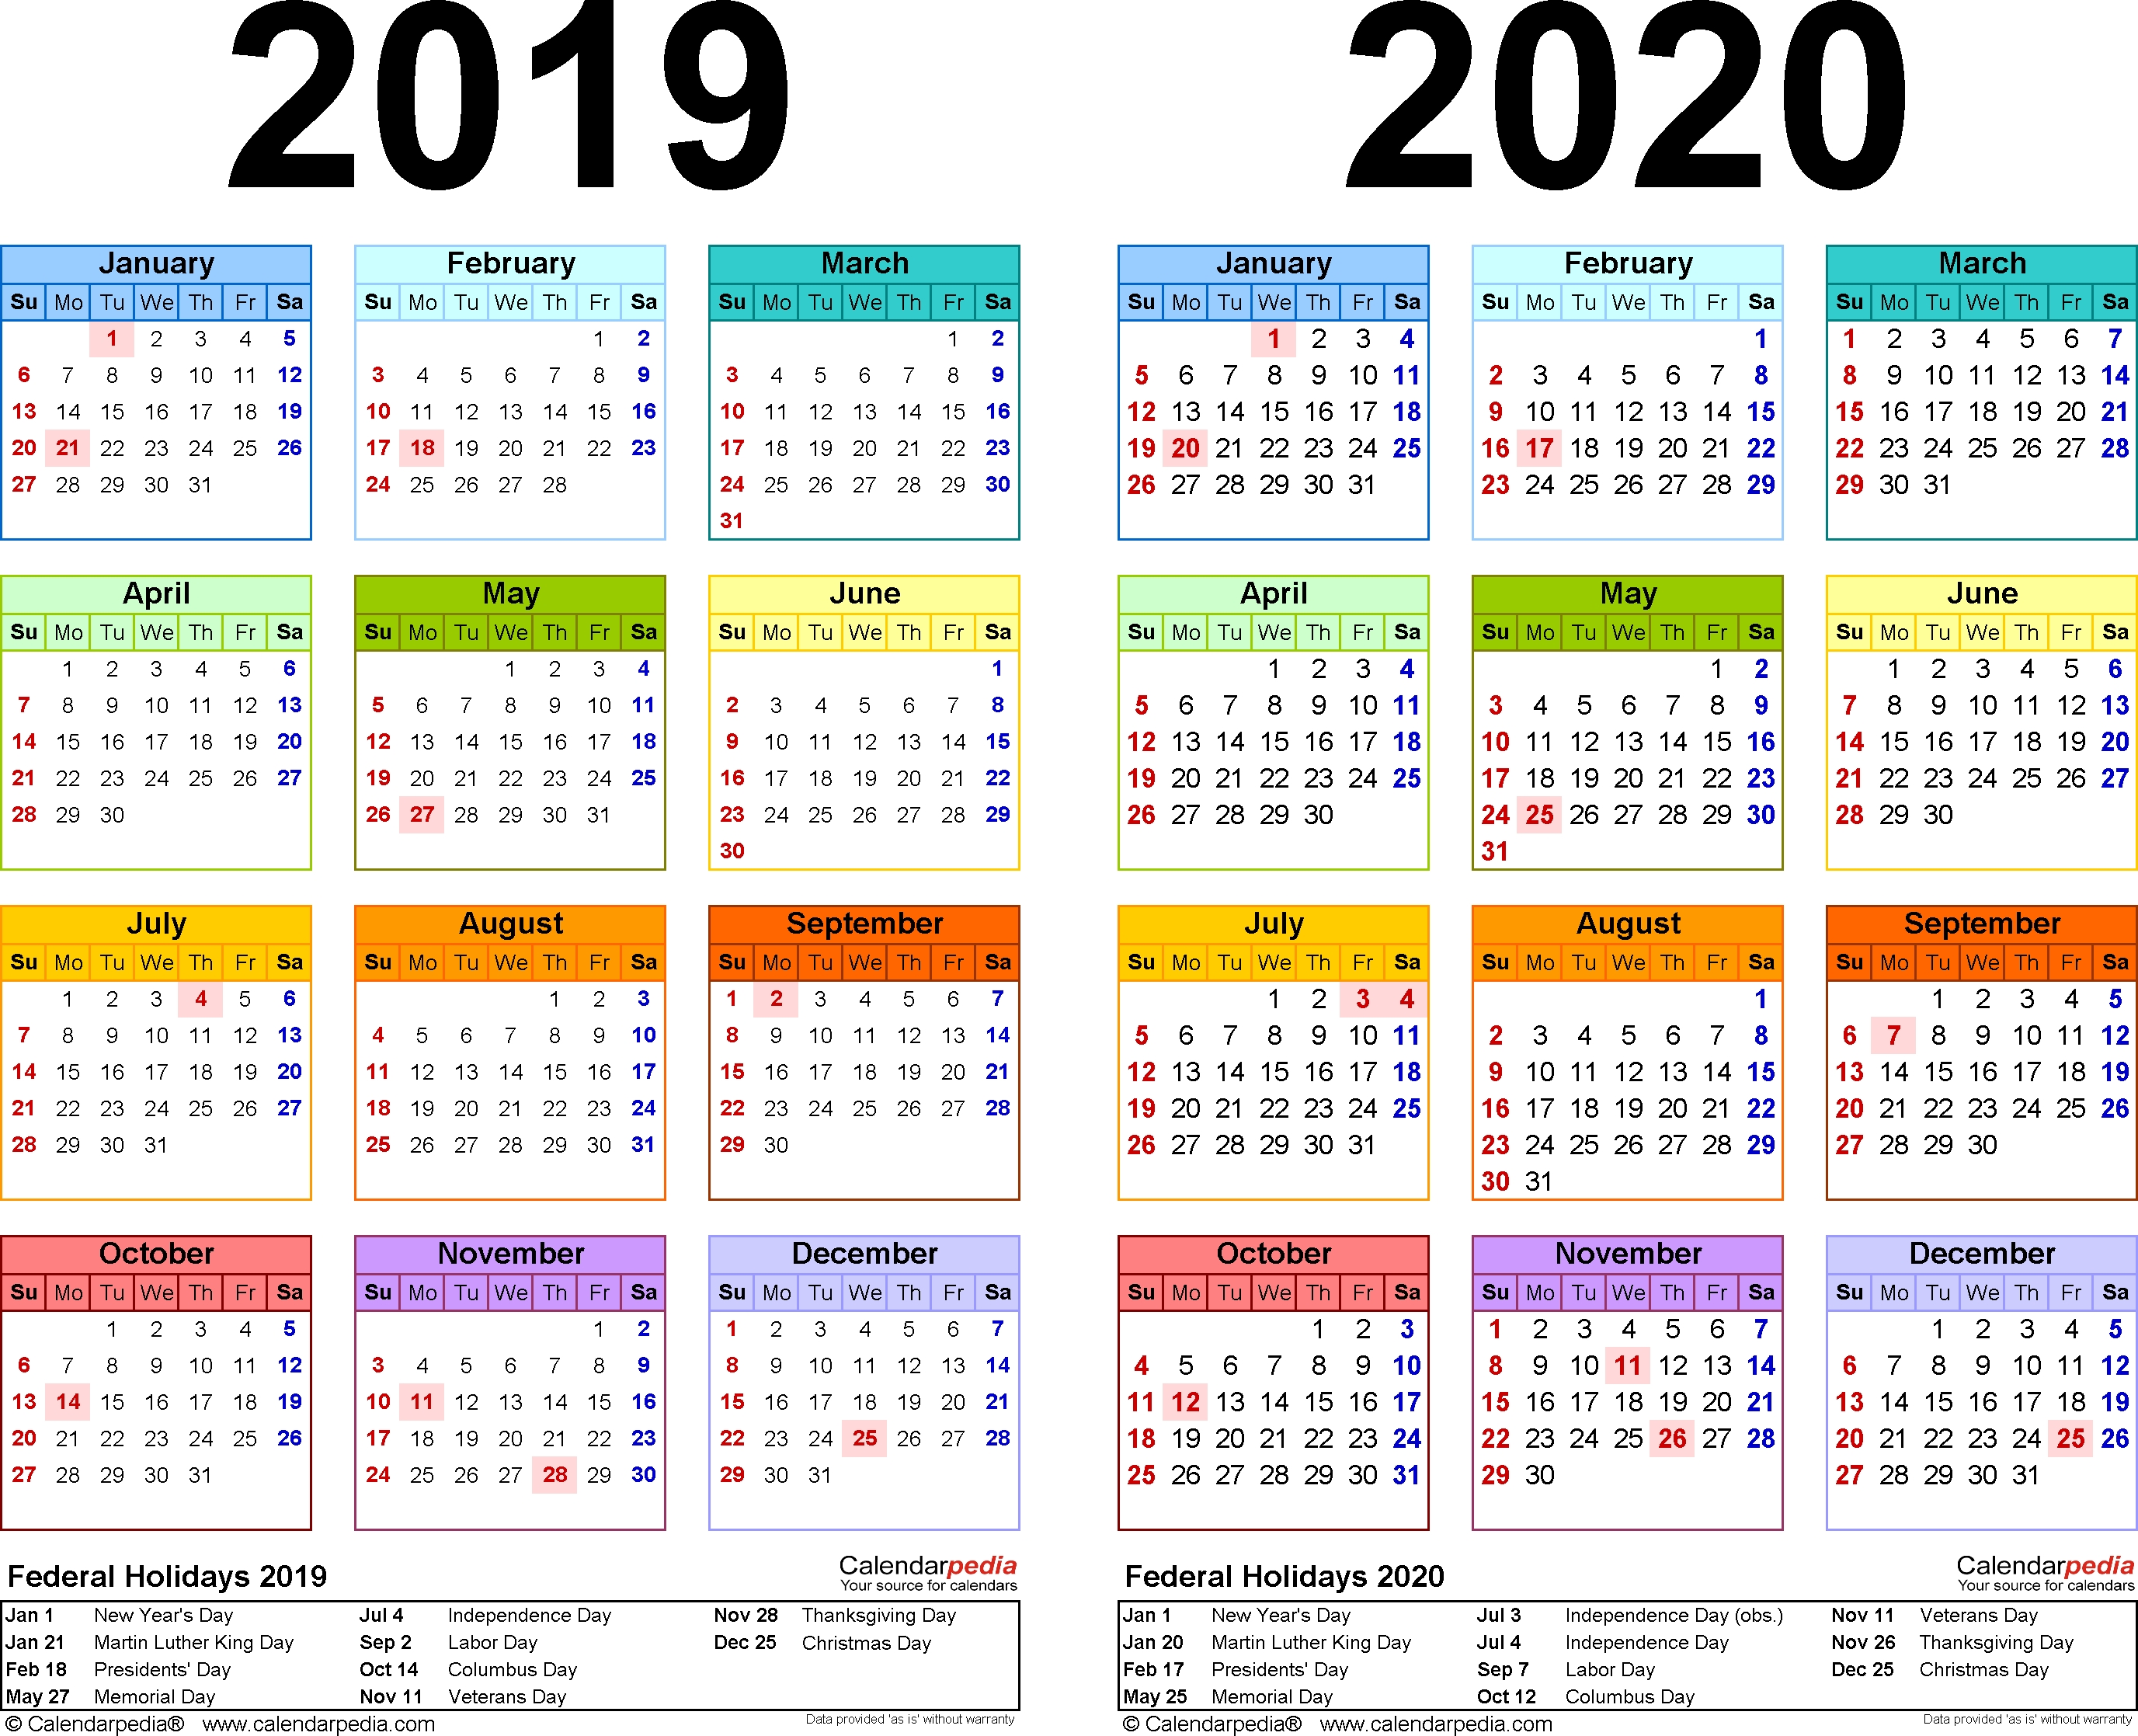 2019-2020 Calendar - Free Printable Two-Year Pdf Calendars throughout Year At A Glance Calendar 2020 Free Printable